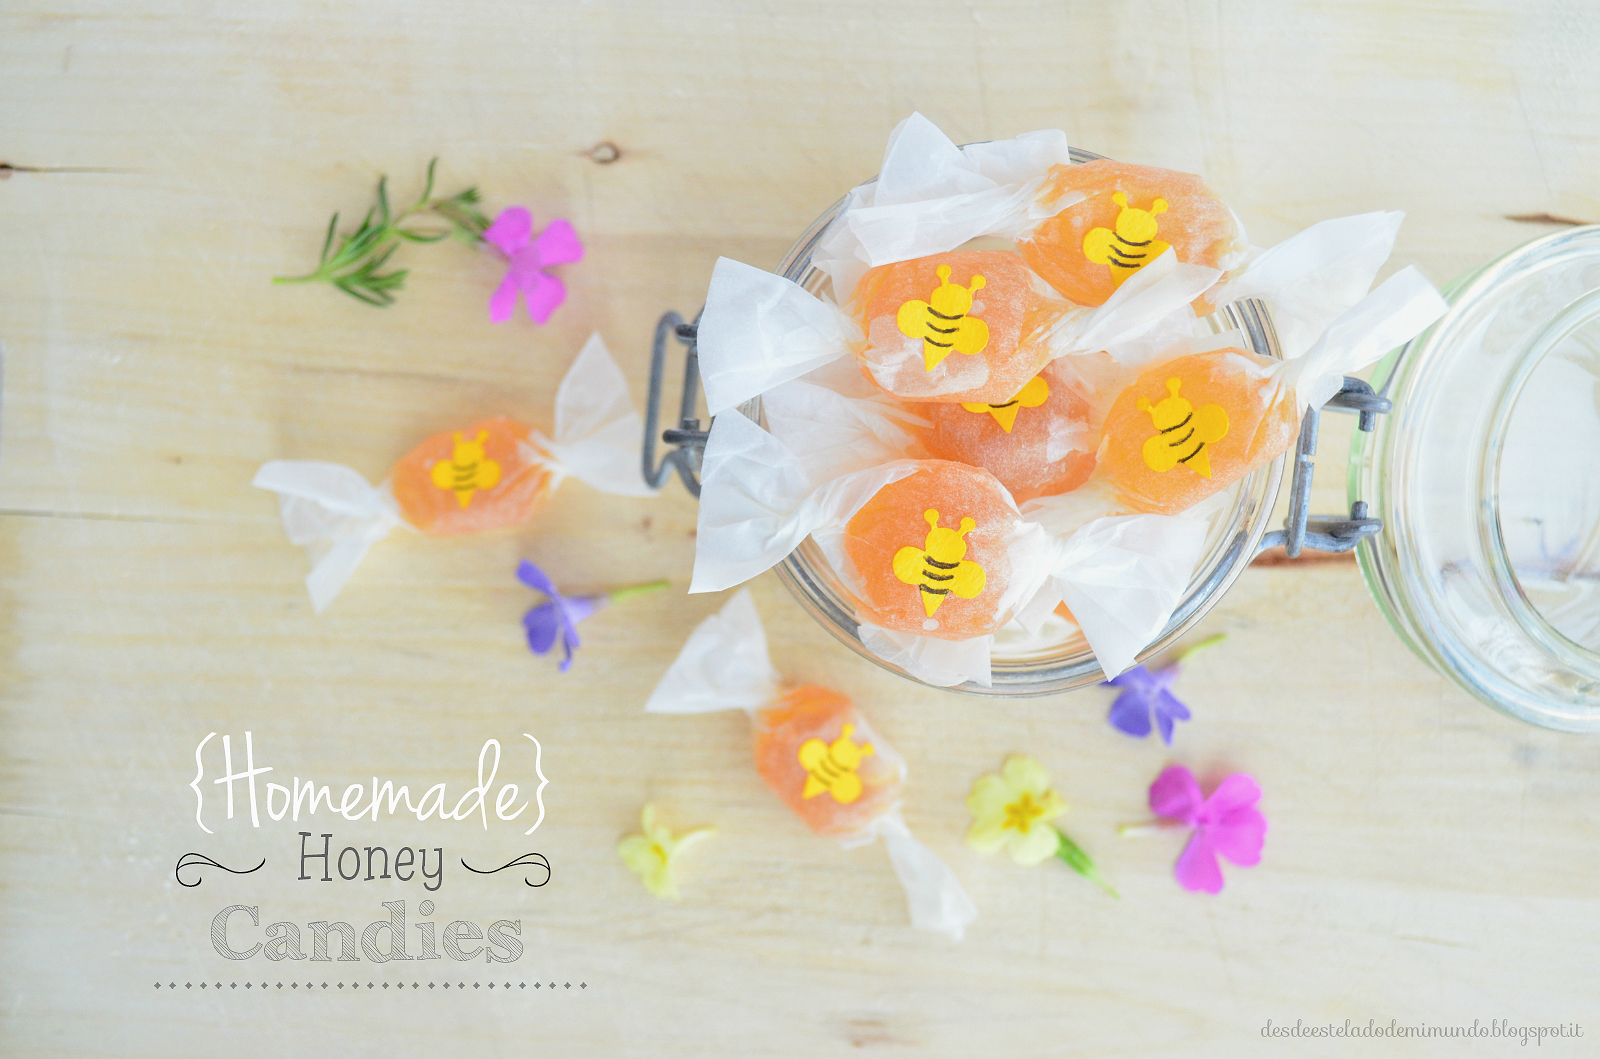 homemade honey candies desdeesteladodemimundo.blogspot.it